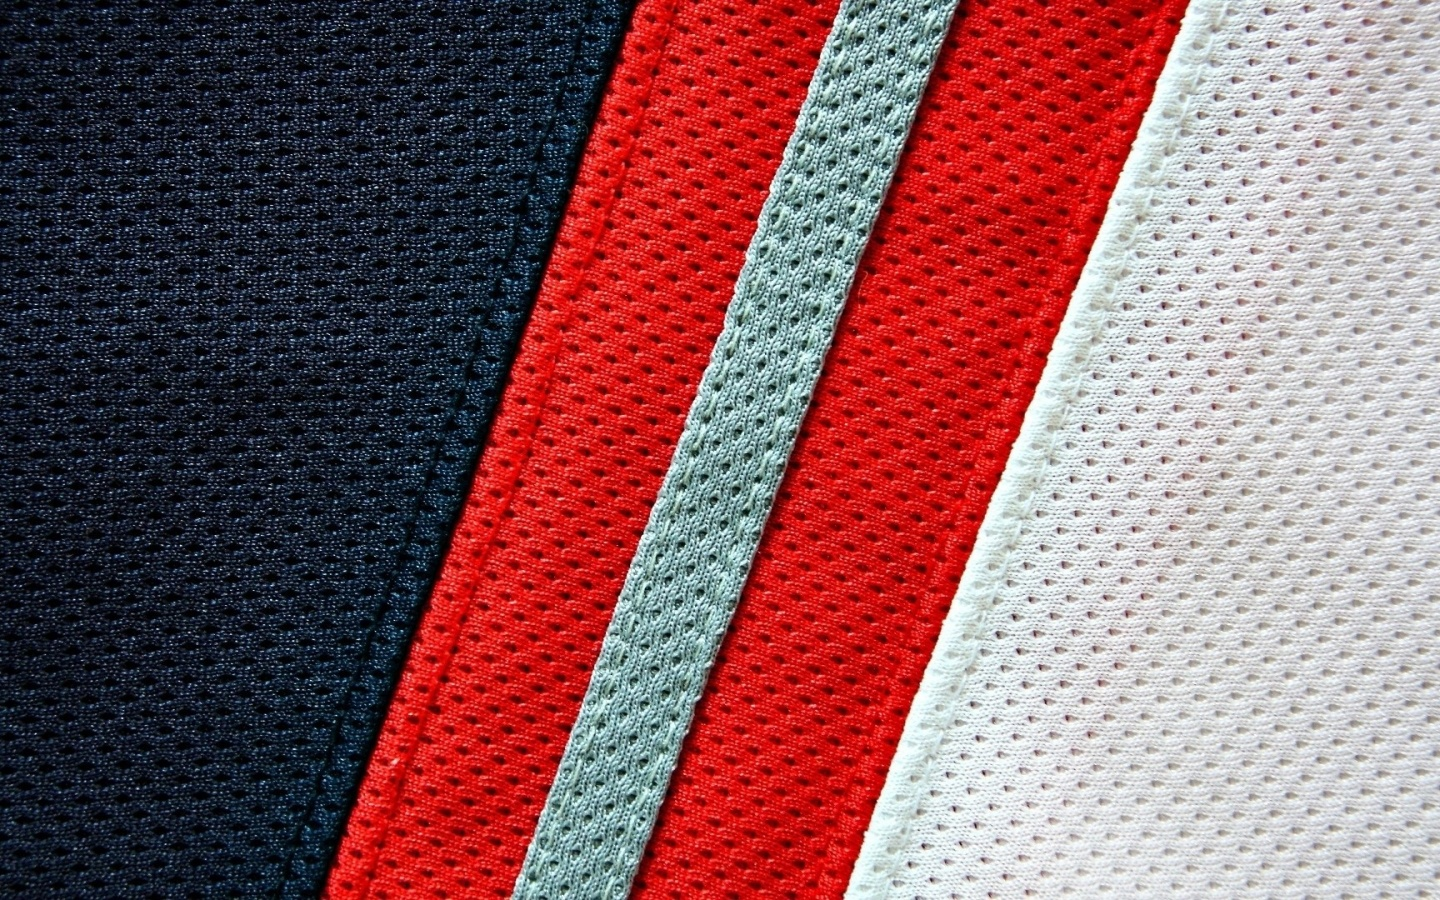 1440x900 Red White And Blue Fabric